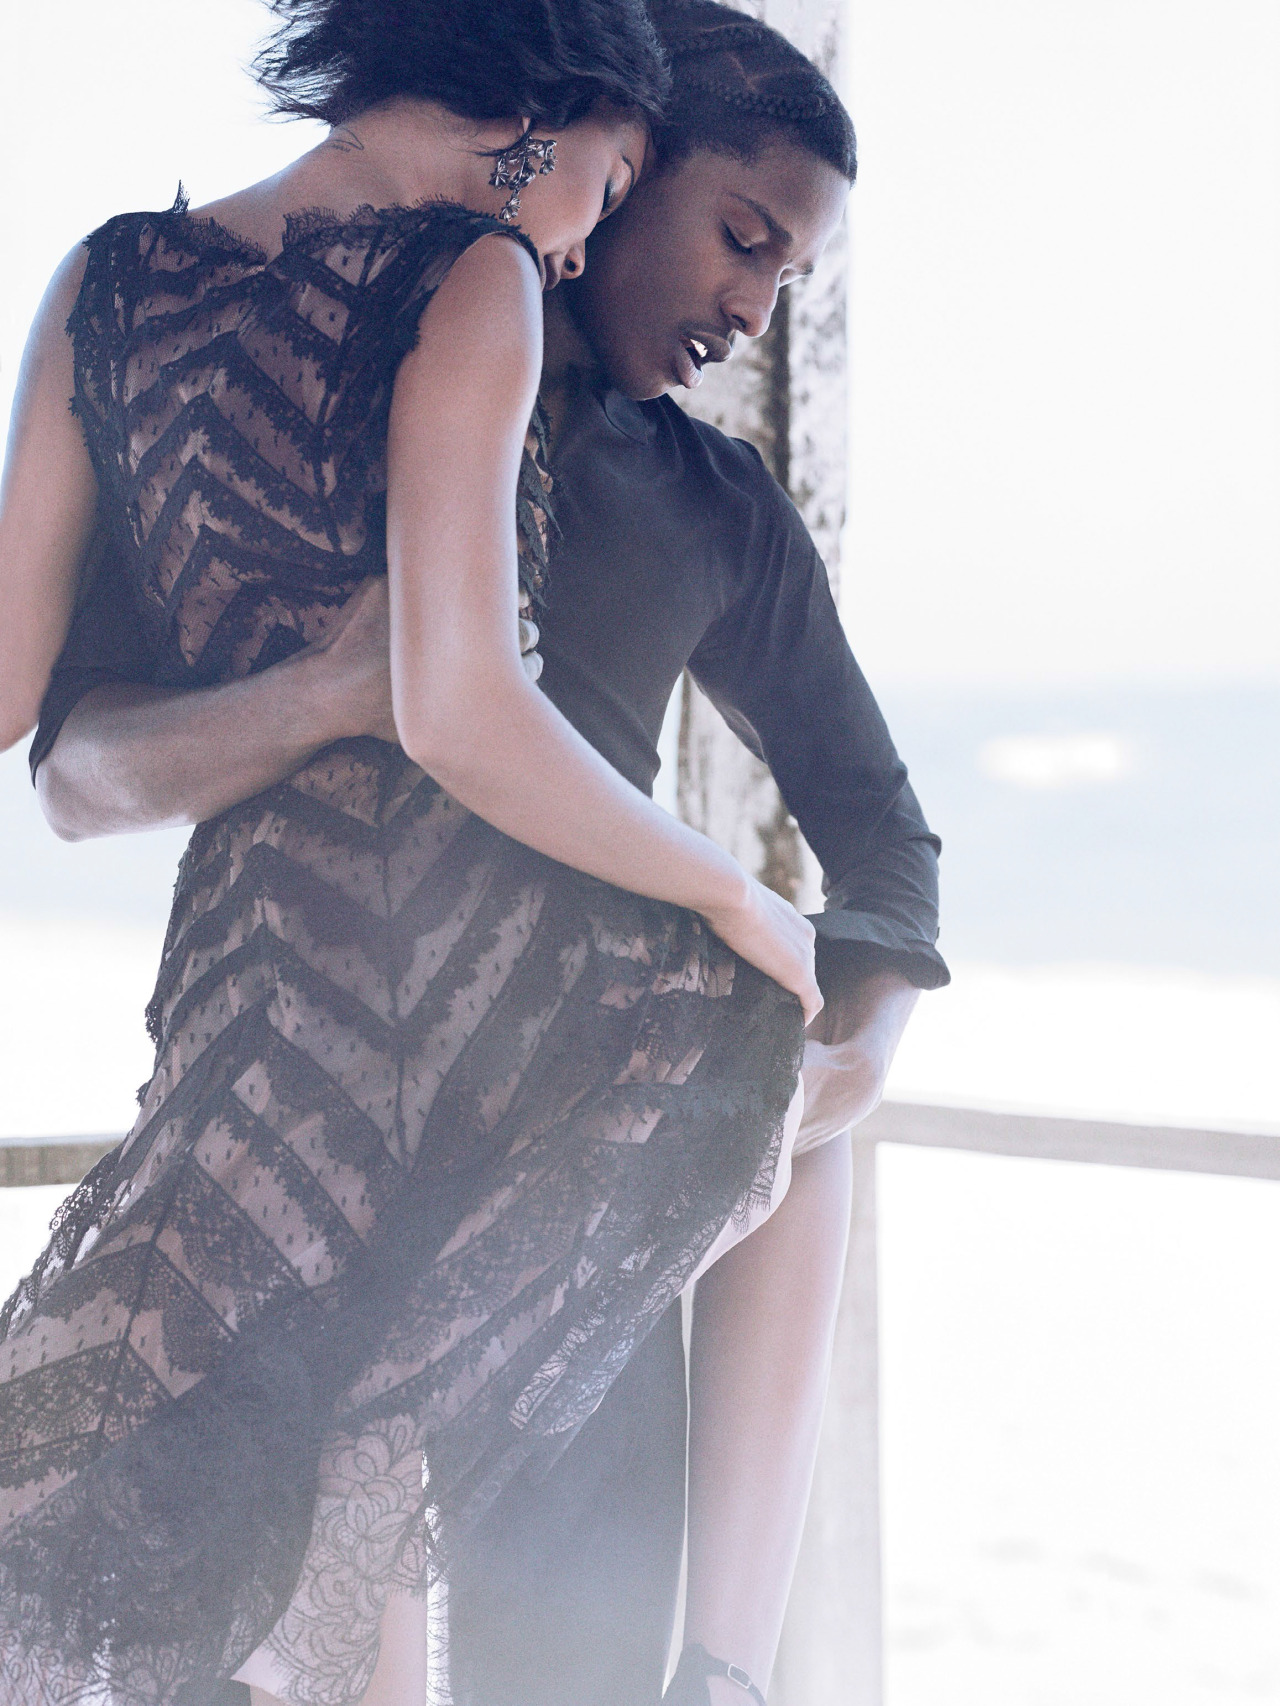 Asap Rocky X Chanel Iman For Vogue Magazine  2